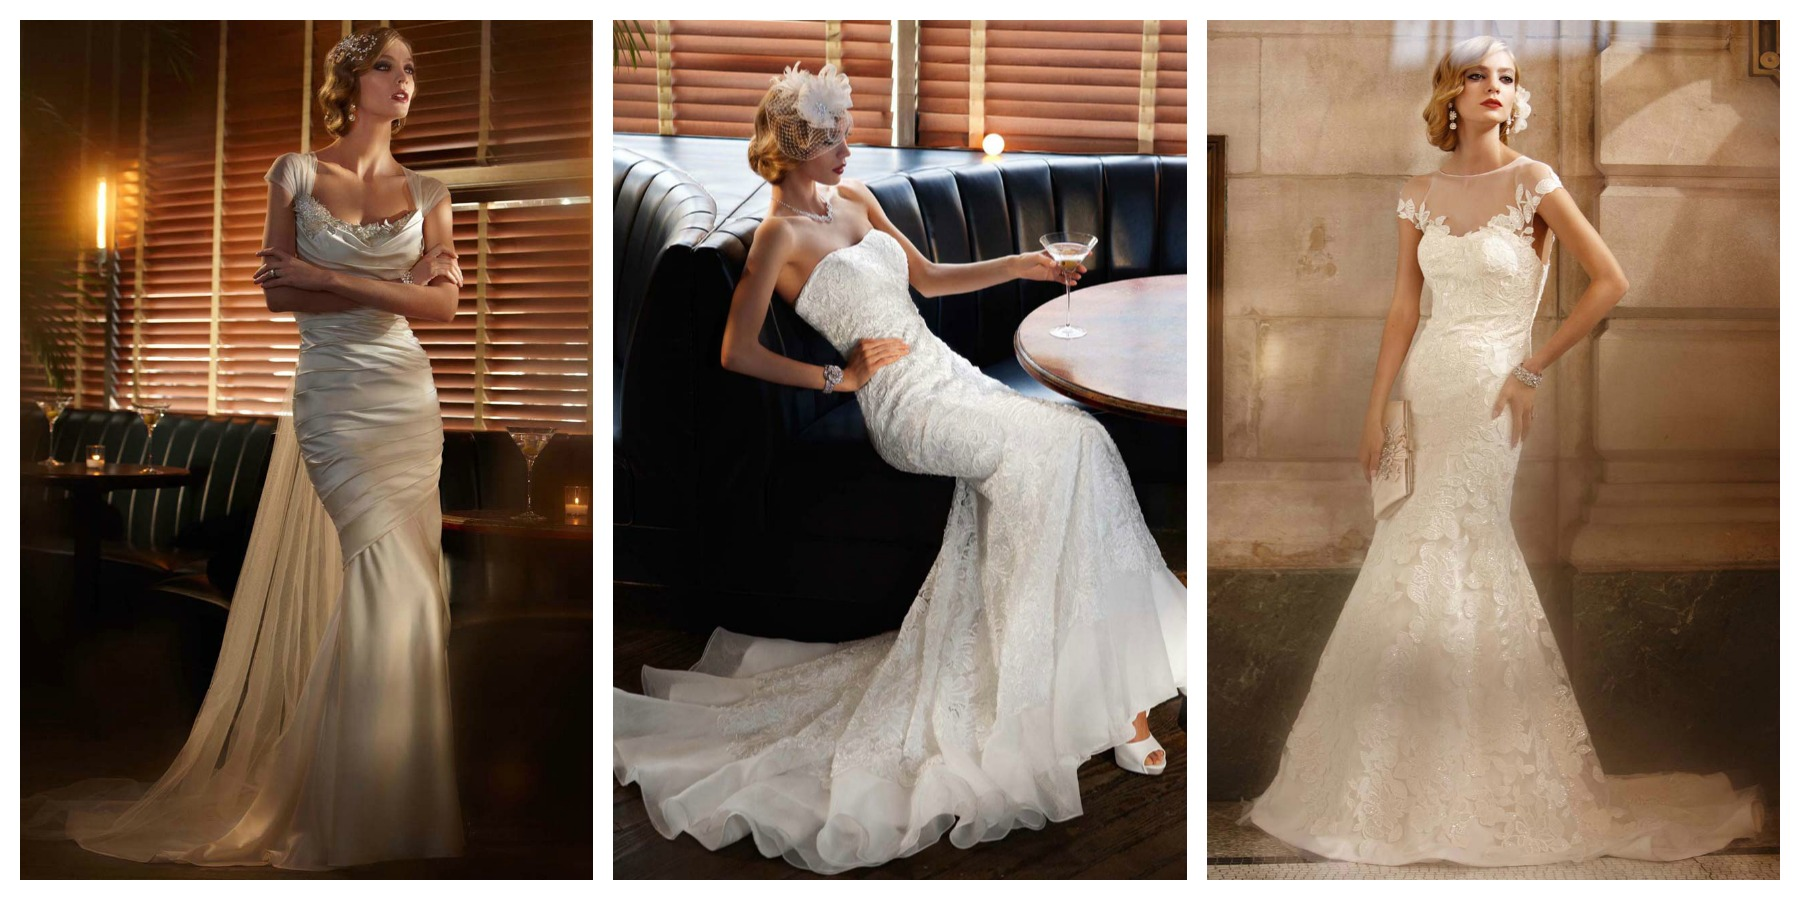 The bridal dress wedding dress trend gatsby style for The great gatsby wedding dresses